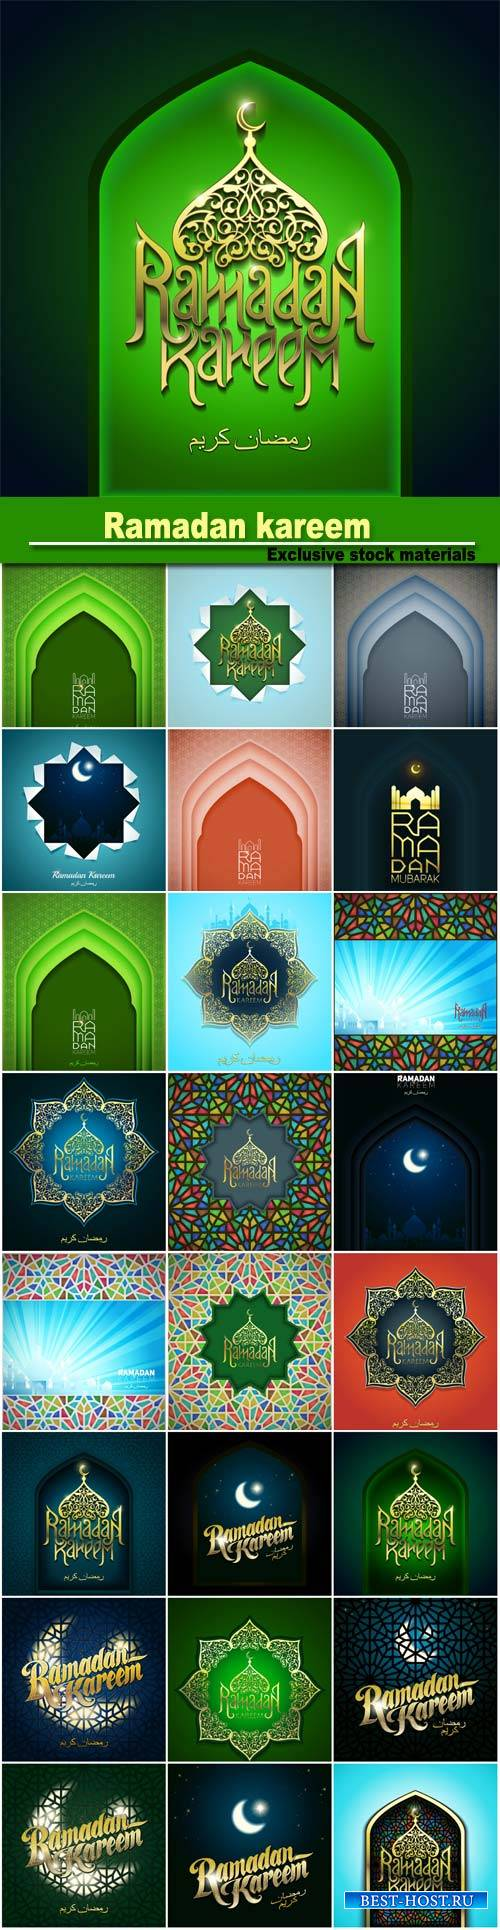 Ramadan Kareem, eastern vector backgrounds